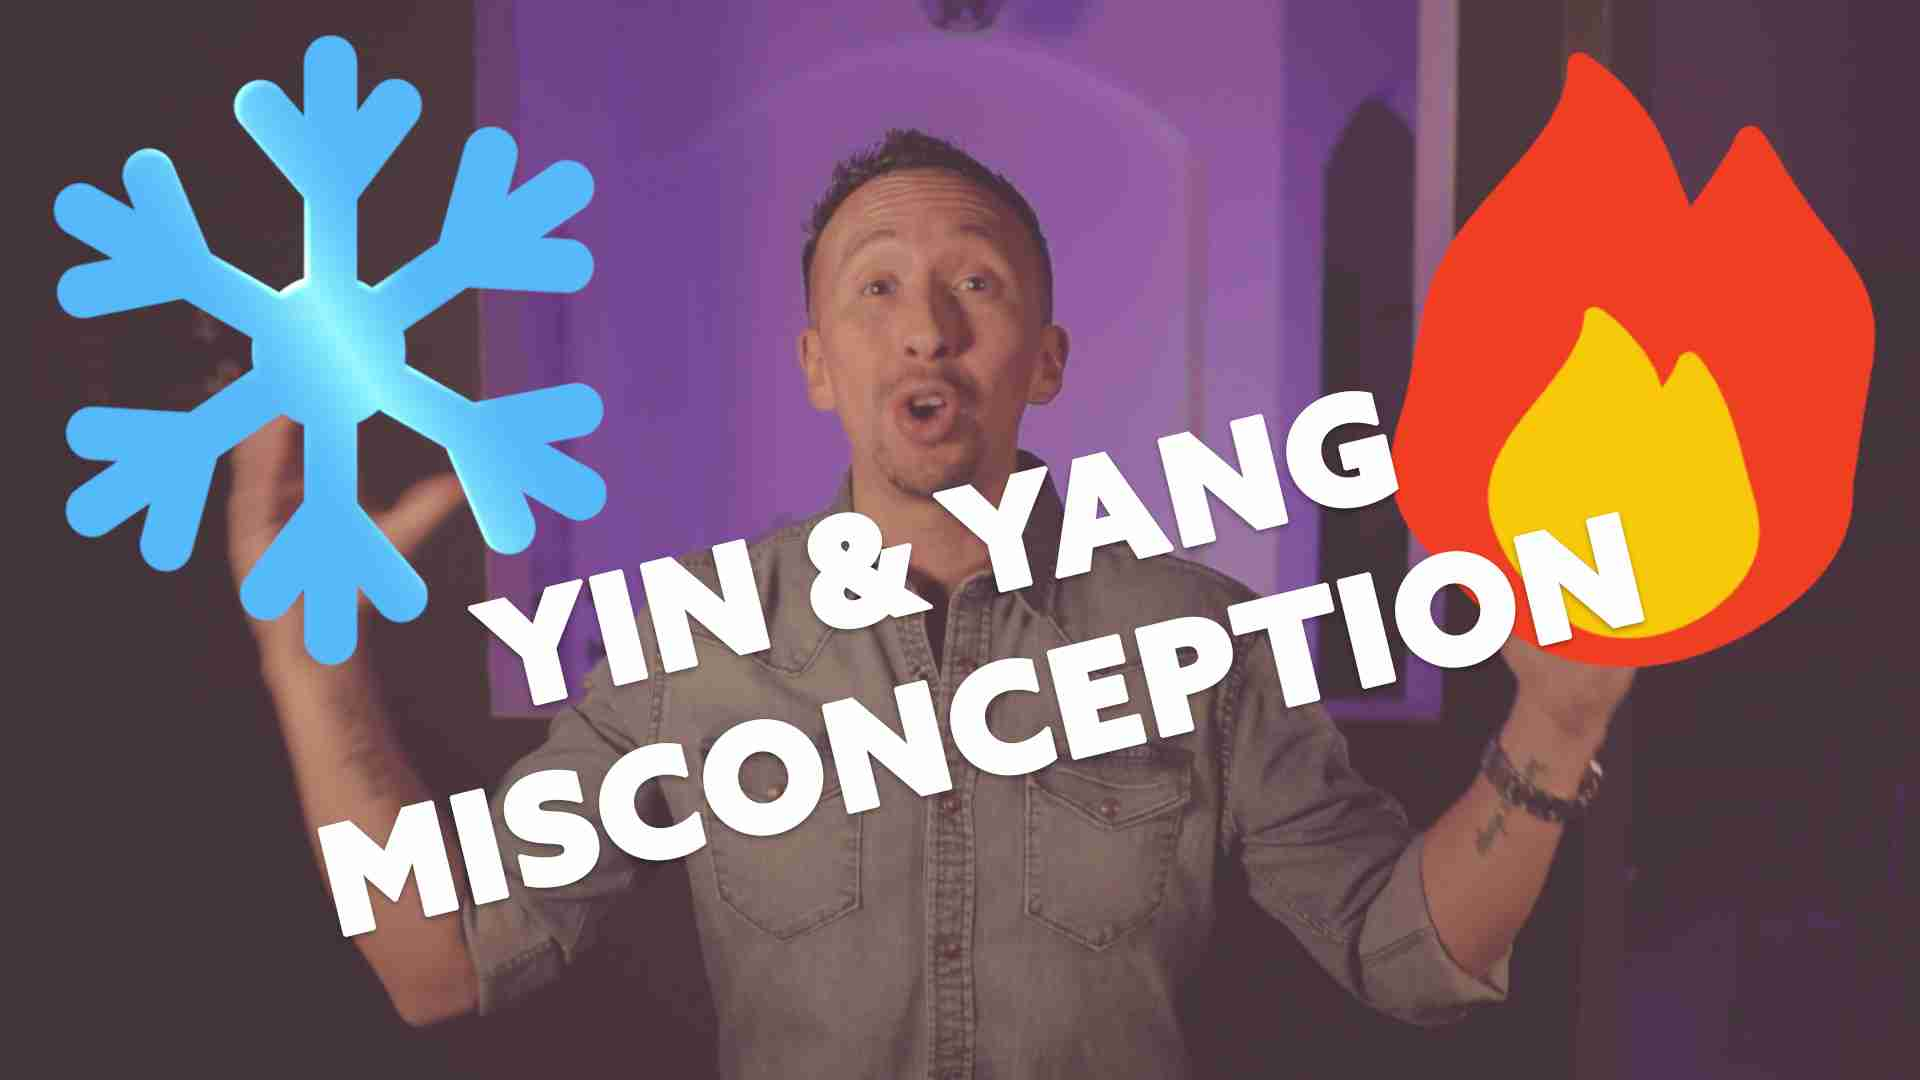 Marcelo Oleas explains yin and yang misconception